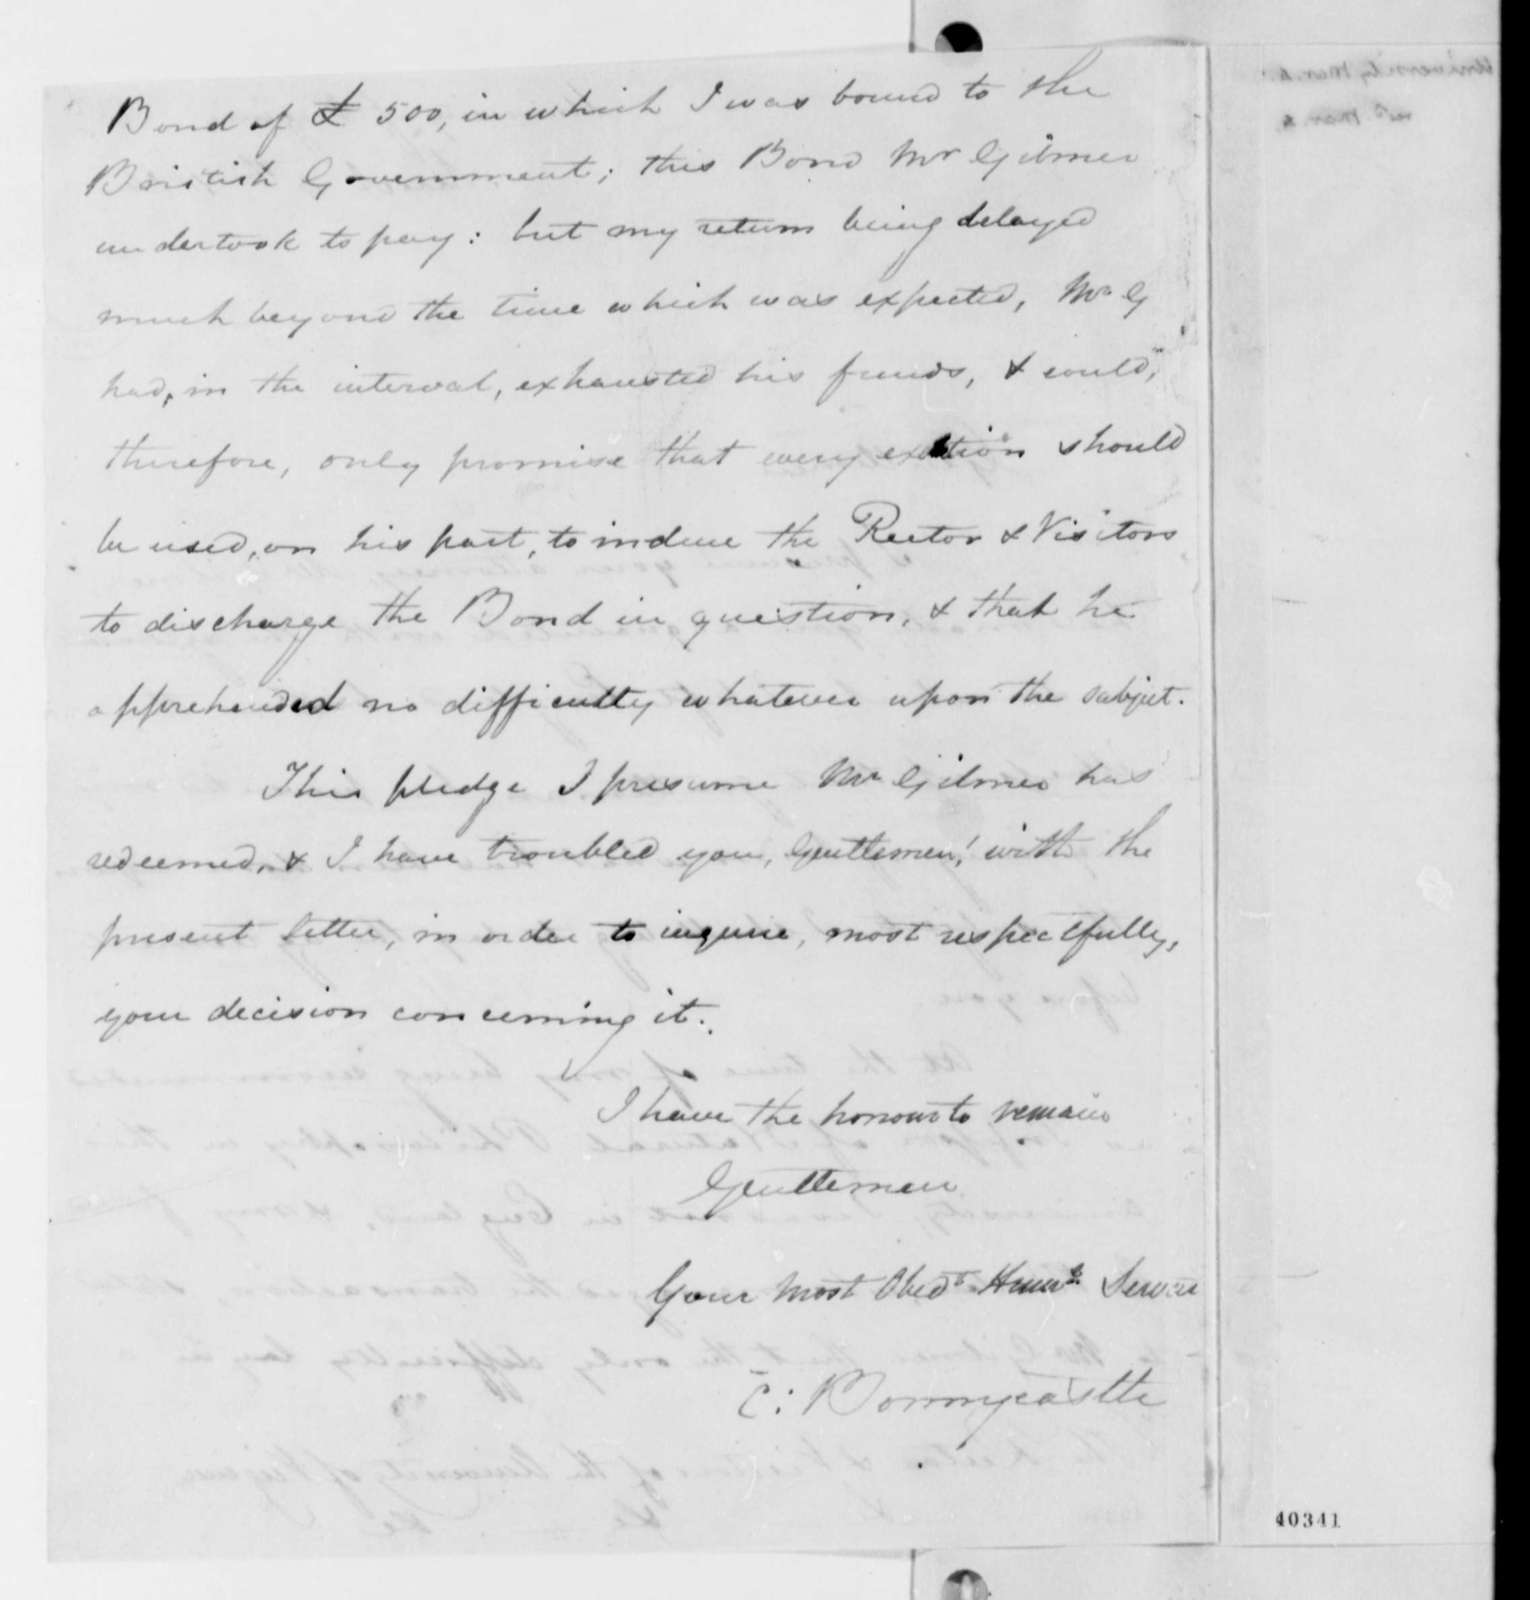 Thomas Jefferson to Charles Bonnycastle, March 4, 1824